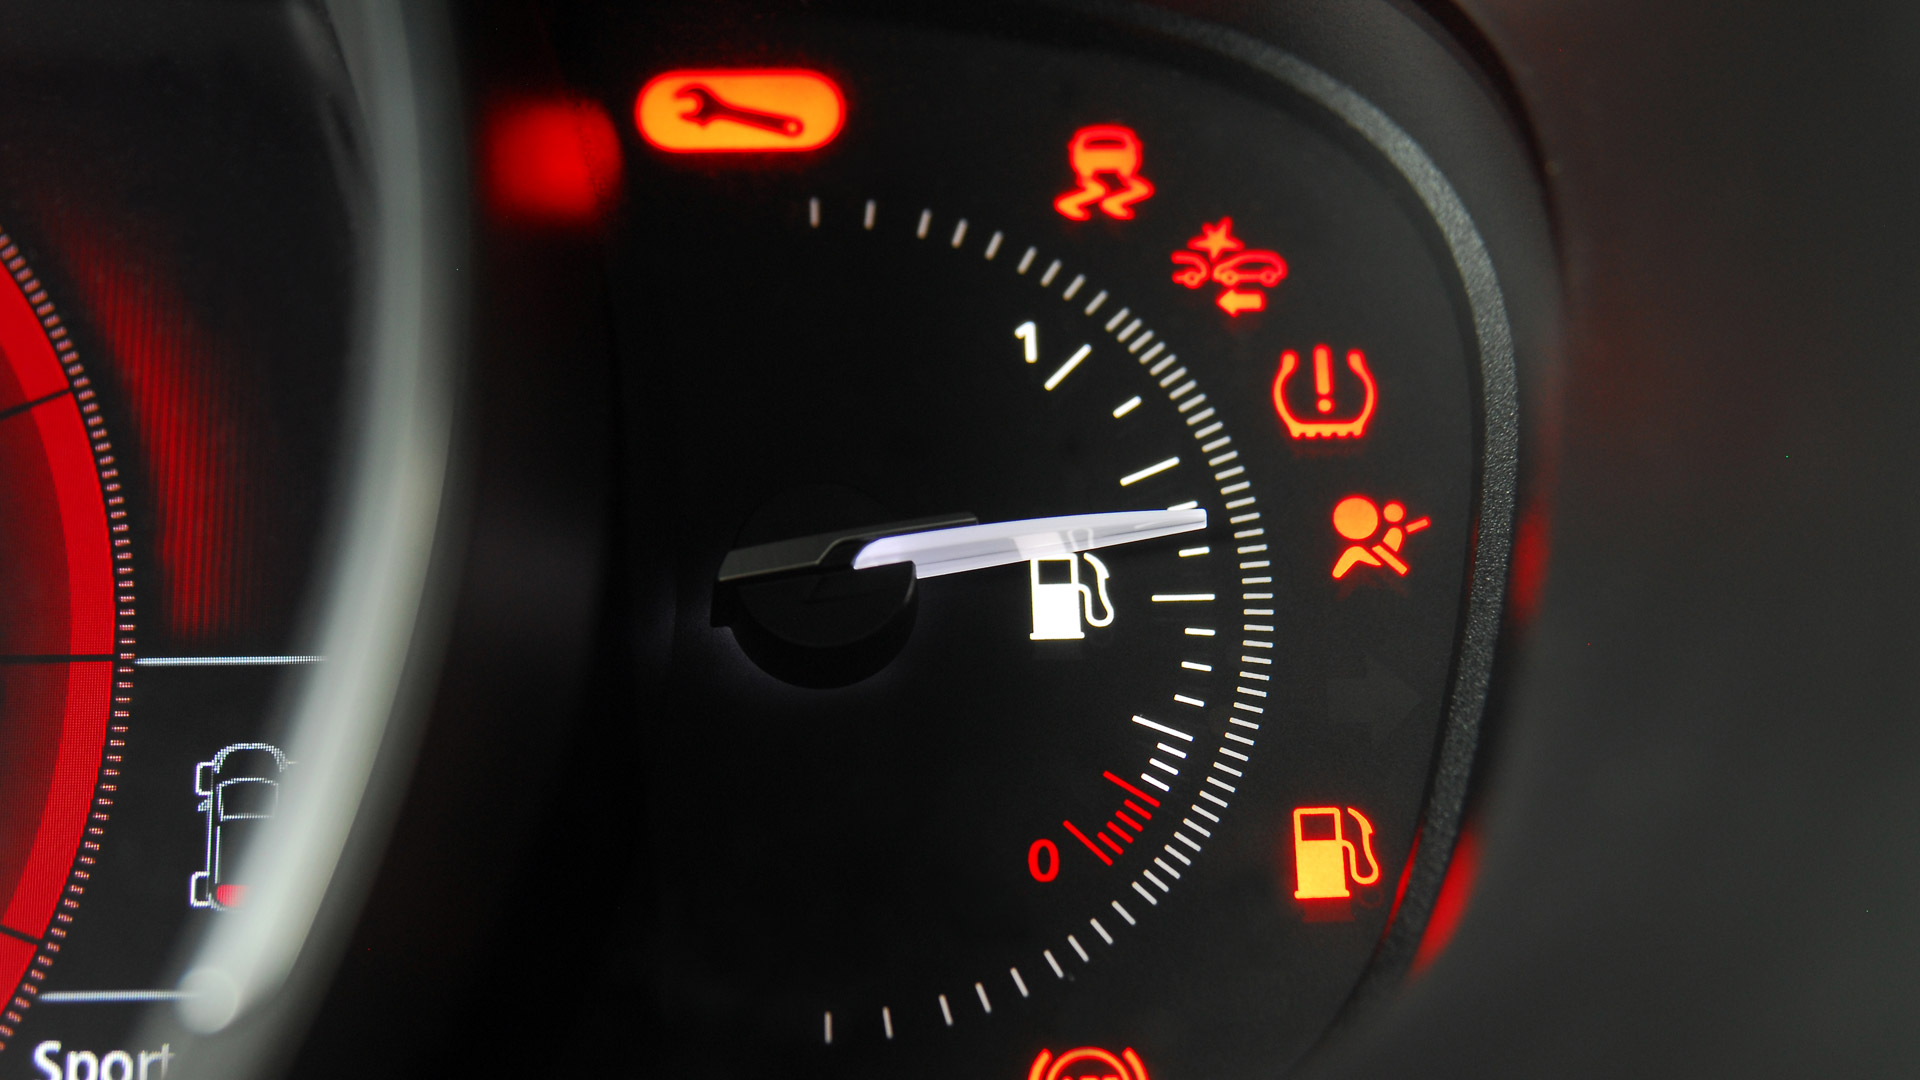 Fleetcare - Misfuelling your car | Using the wrong petrol